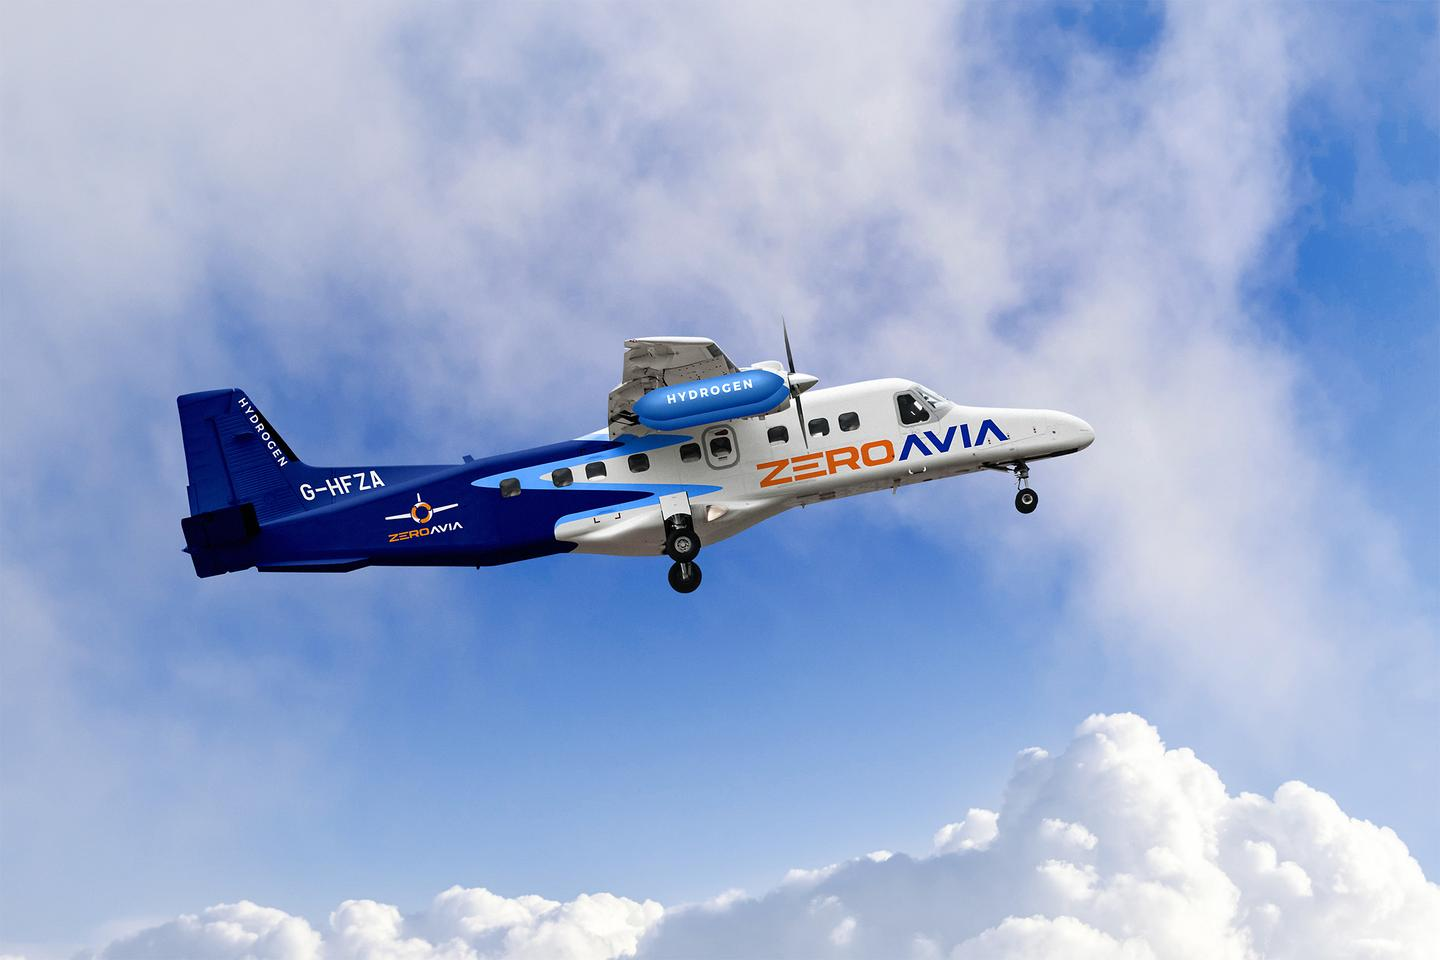 ZeroAvia has bought two twin-engine, 19-seat Dornier 228 aircraft to retrofit with its biggest hydrogen powertrain to date (Digitally altered image)